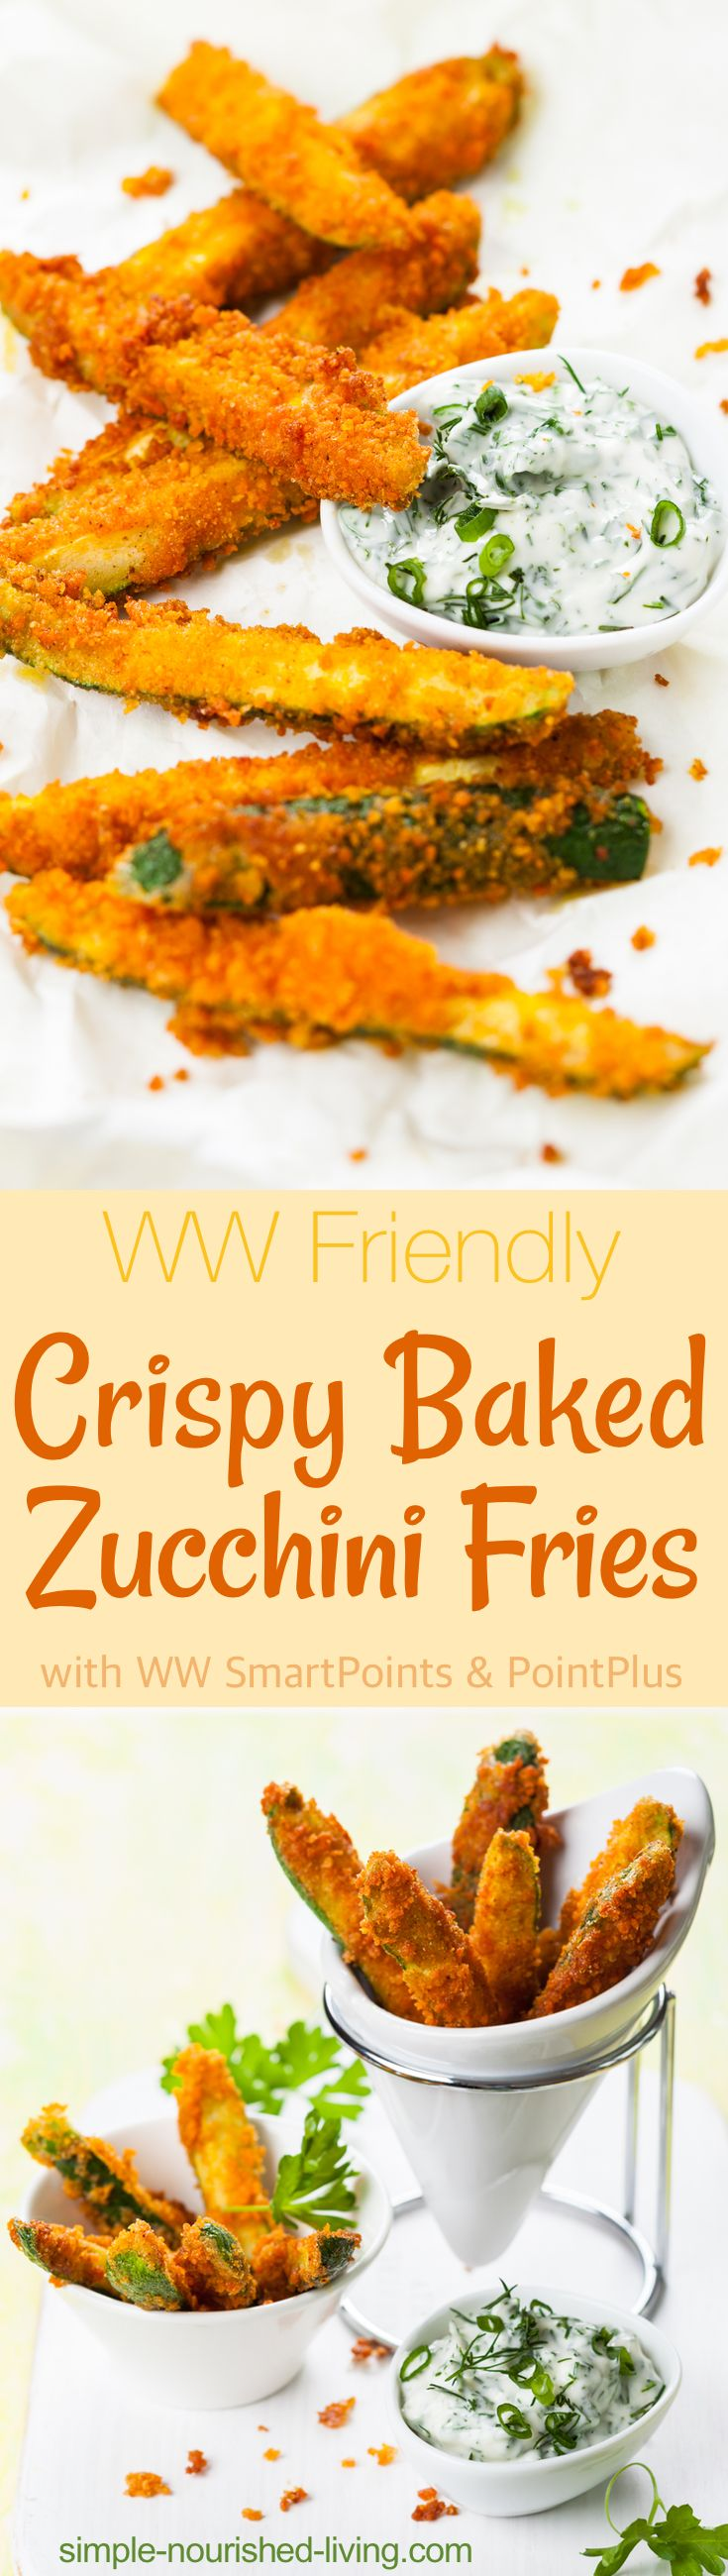 Super-crispy and just as satisfying as fried, these WW Friendly Baked Zucchini Fries turned out even better than I hoped. *3 Weight Watchers SmartPoints - Simple-Nourished-Living.com